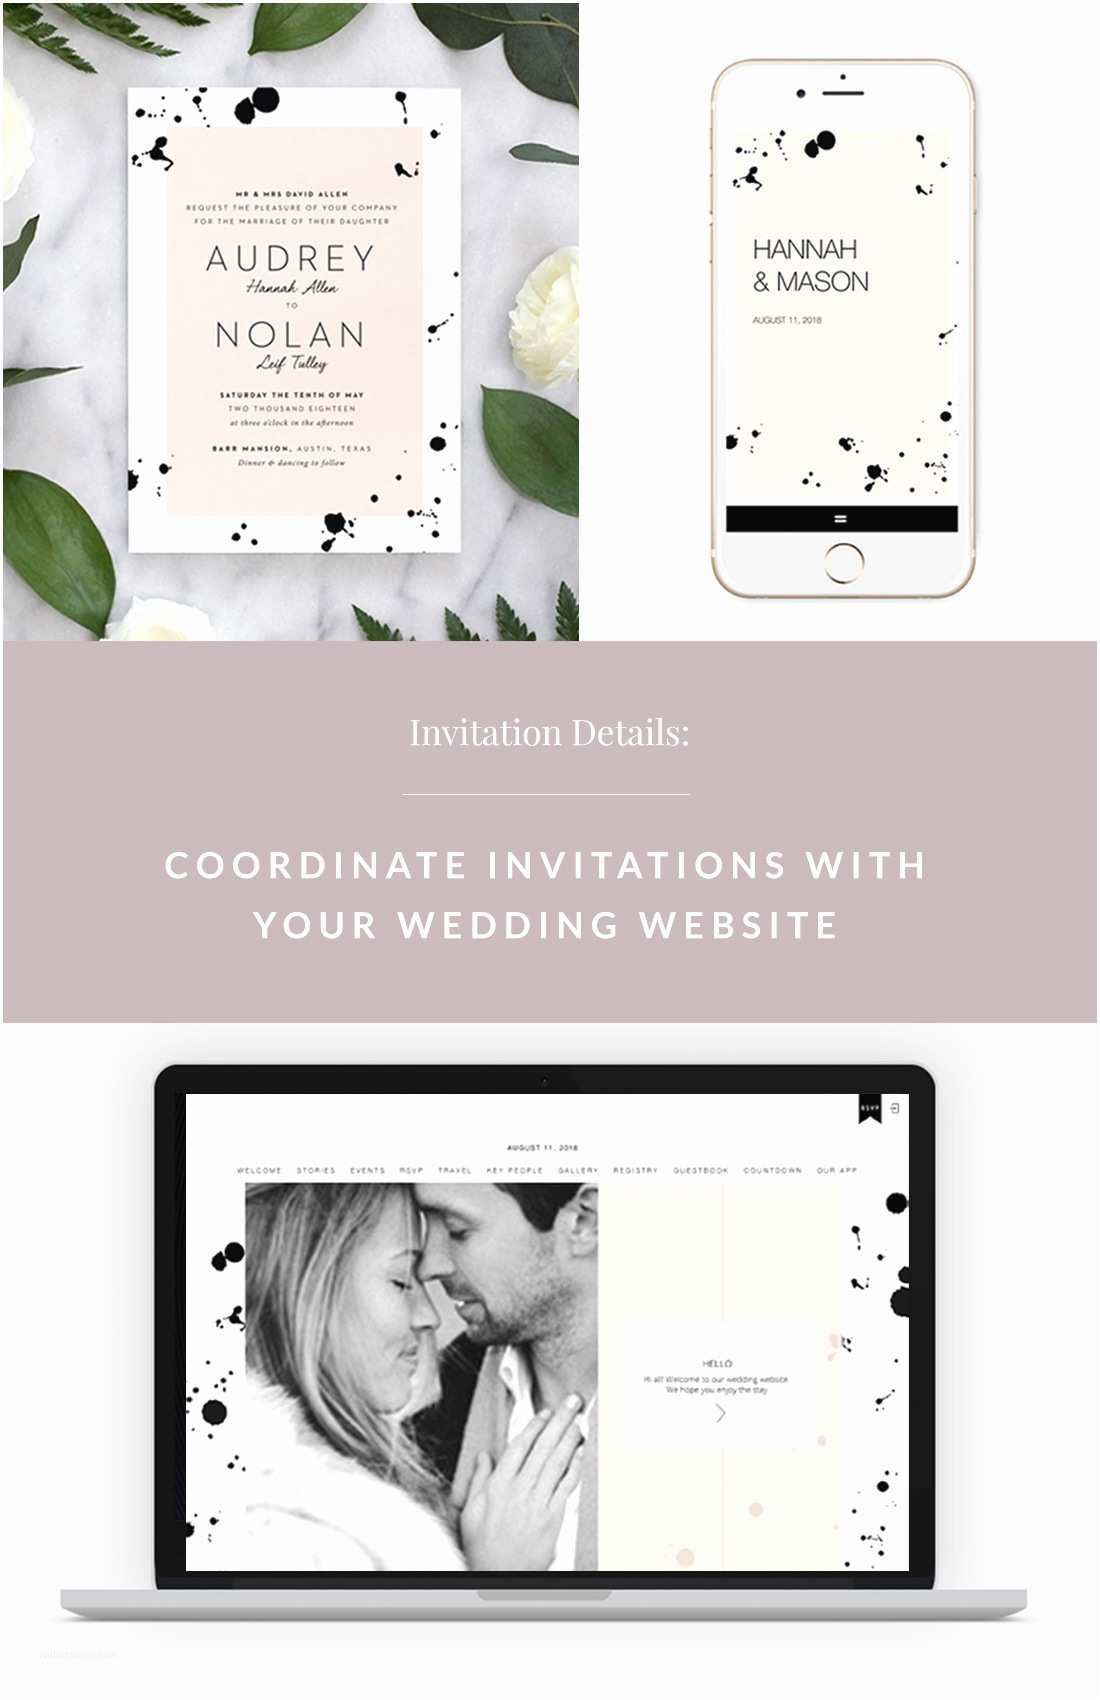 Wedding Invitation Website Coordinate Invitations with Your Wedding Website with Fine